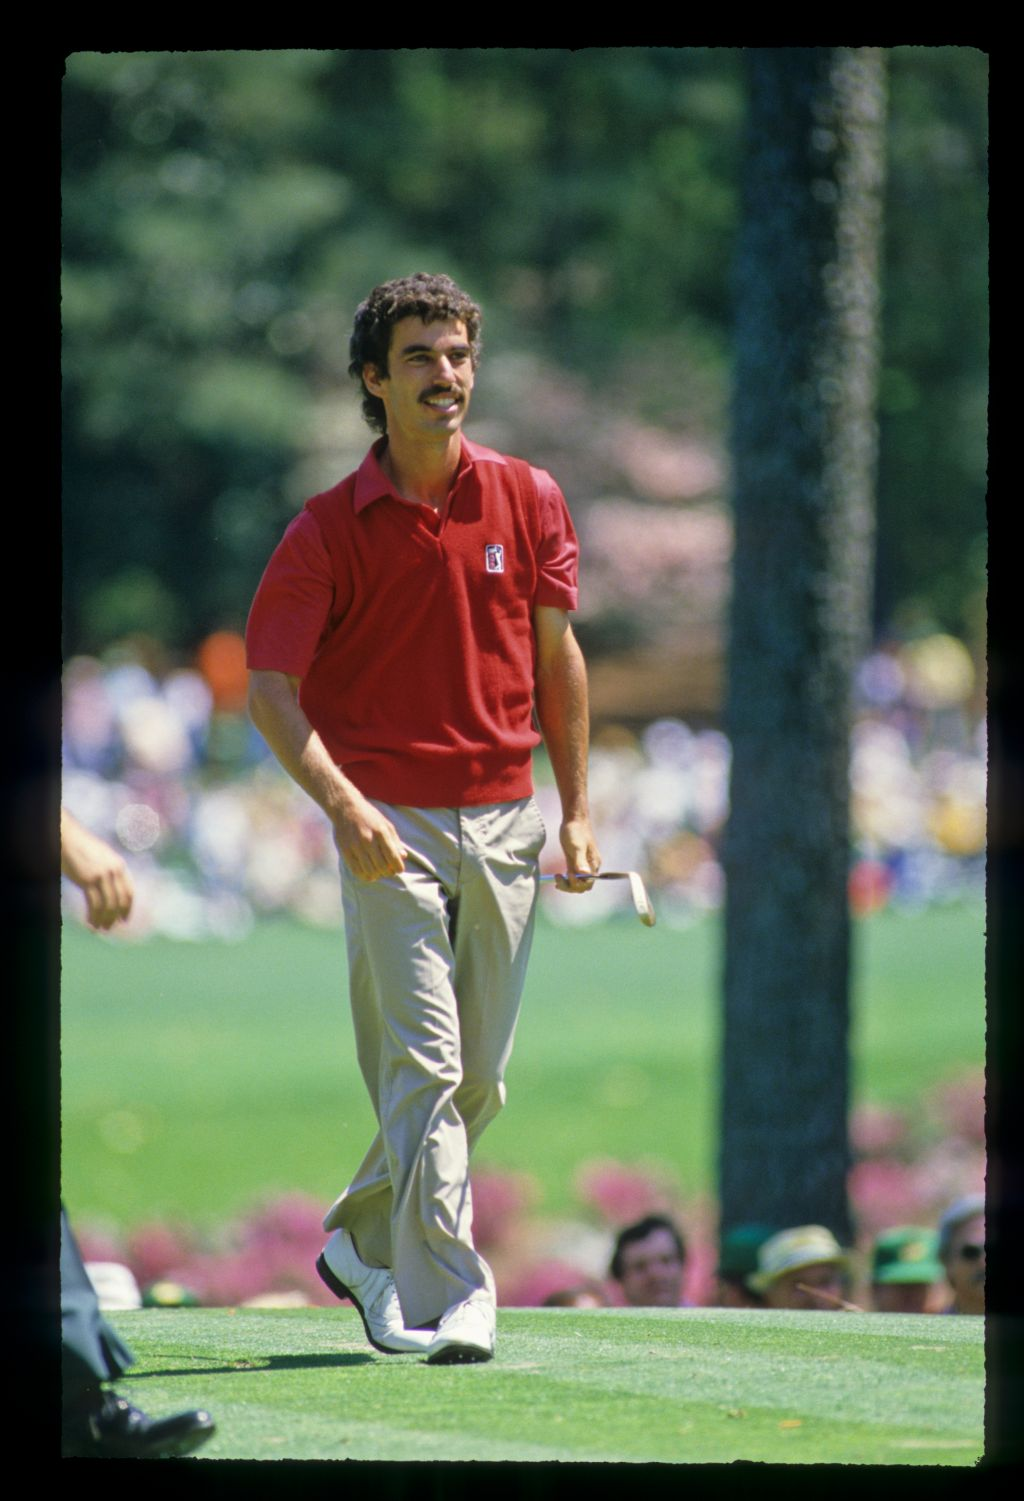 Corey Pavin leaving the tee during the 1986 Masters